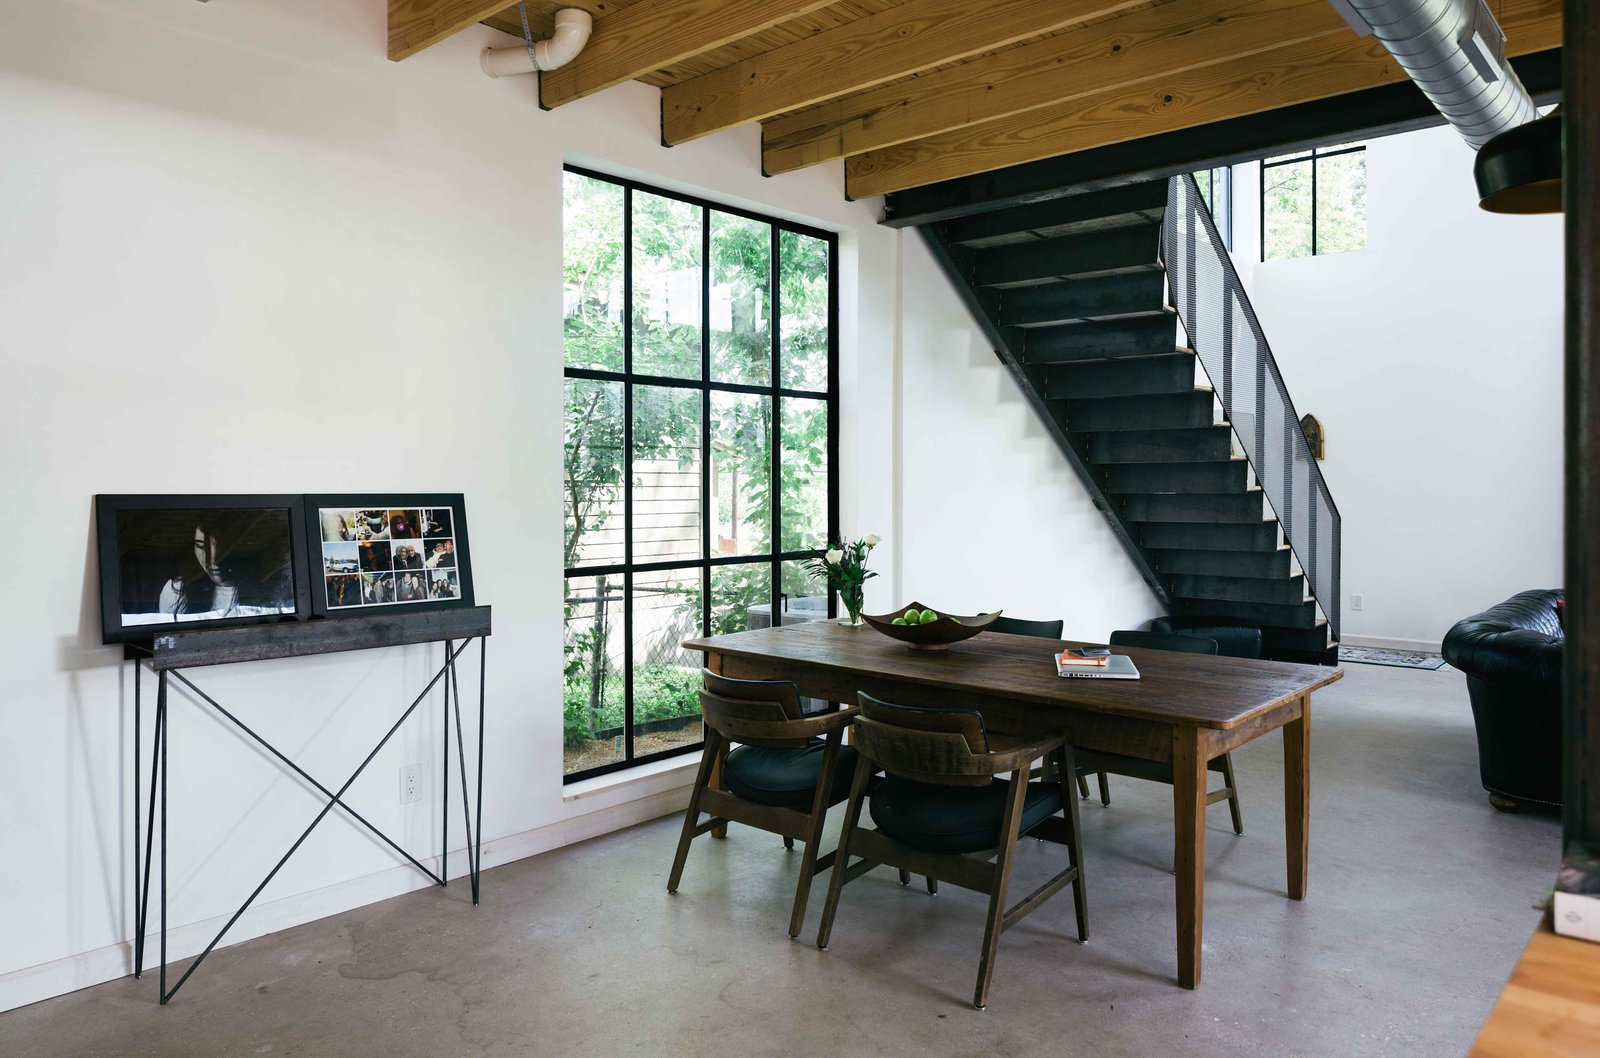 """Dining Room, Chair, Concrete Floor, and Table """"By providing a clean modern base of crisp white walls, the more rustic and industrial materials stand out and give warmth and nostalgia not found in a starkly modern home,"""" Pavonetti says.  190+ Best Modern Staircase Ideas from This Bright, Personality-Filled Home Was Built on a Budget in Austin"""